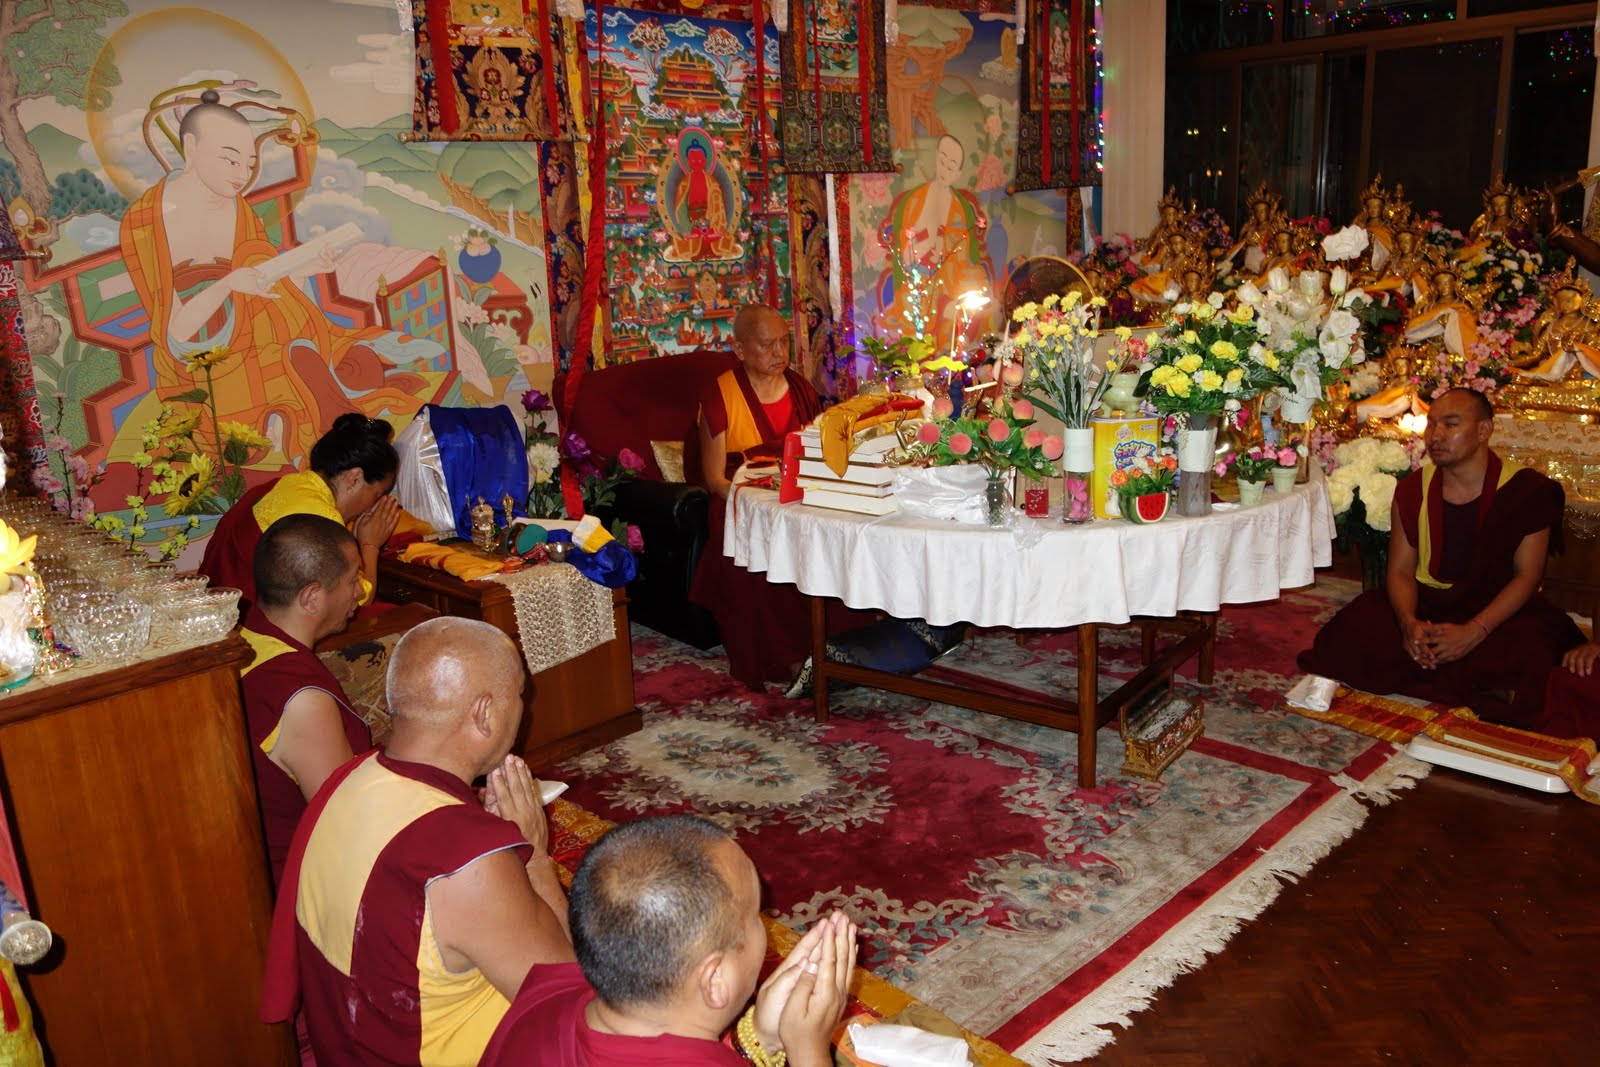 Rinpoche and Khadro-la with Lama Gyupa monks doing Yamantaka self initiniation. Kopan Monastery. May 11, 2013, Photo by Ven.  Roger Kunsang.